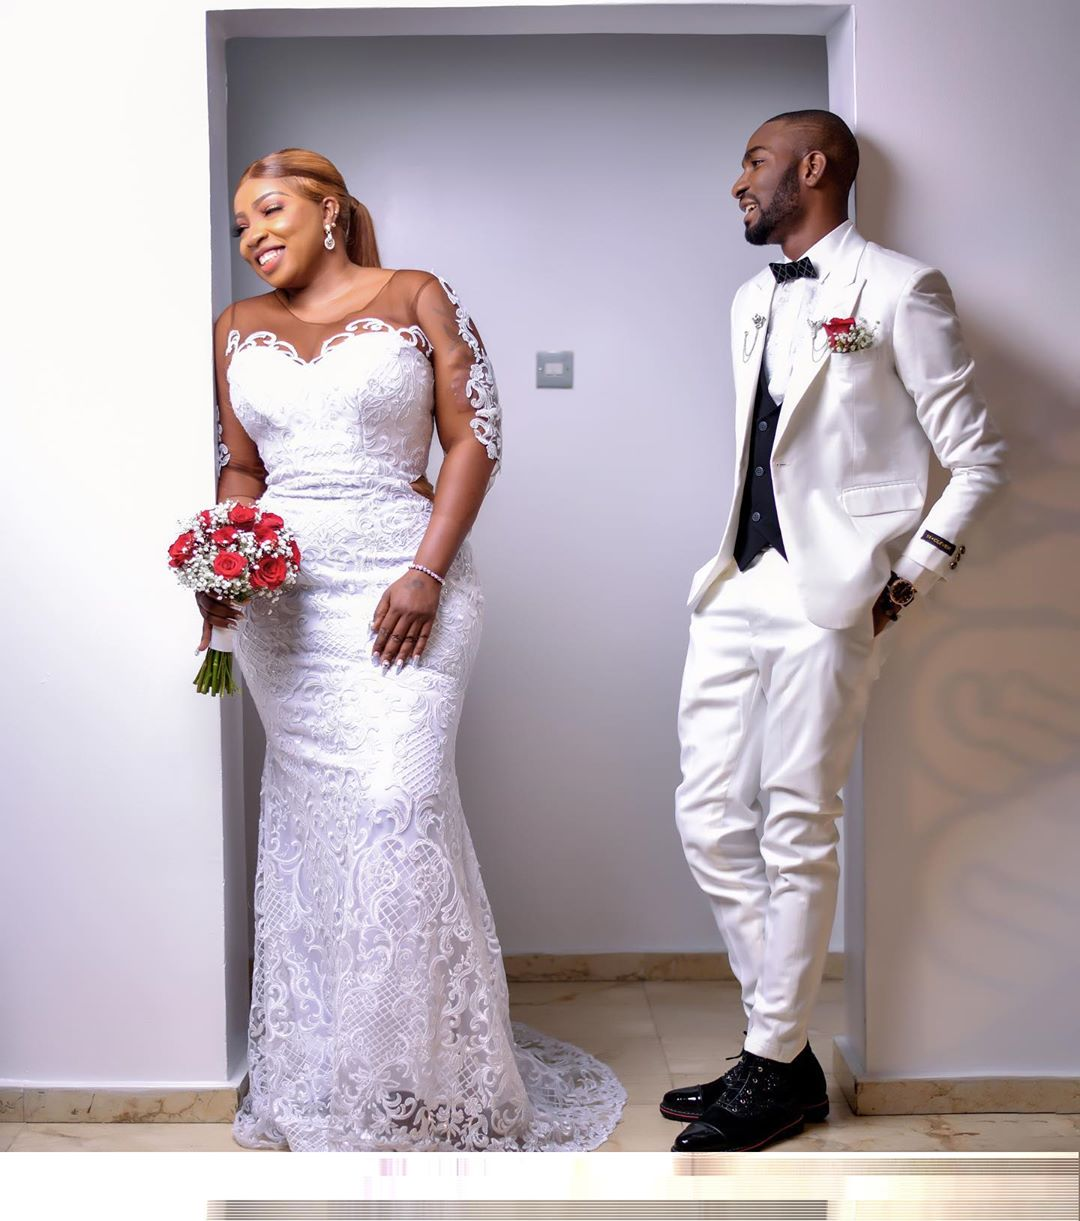 They said he's not my type, yet we got married' – Anita Joseph to those mocking her choice of husband (Photos)